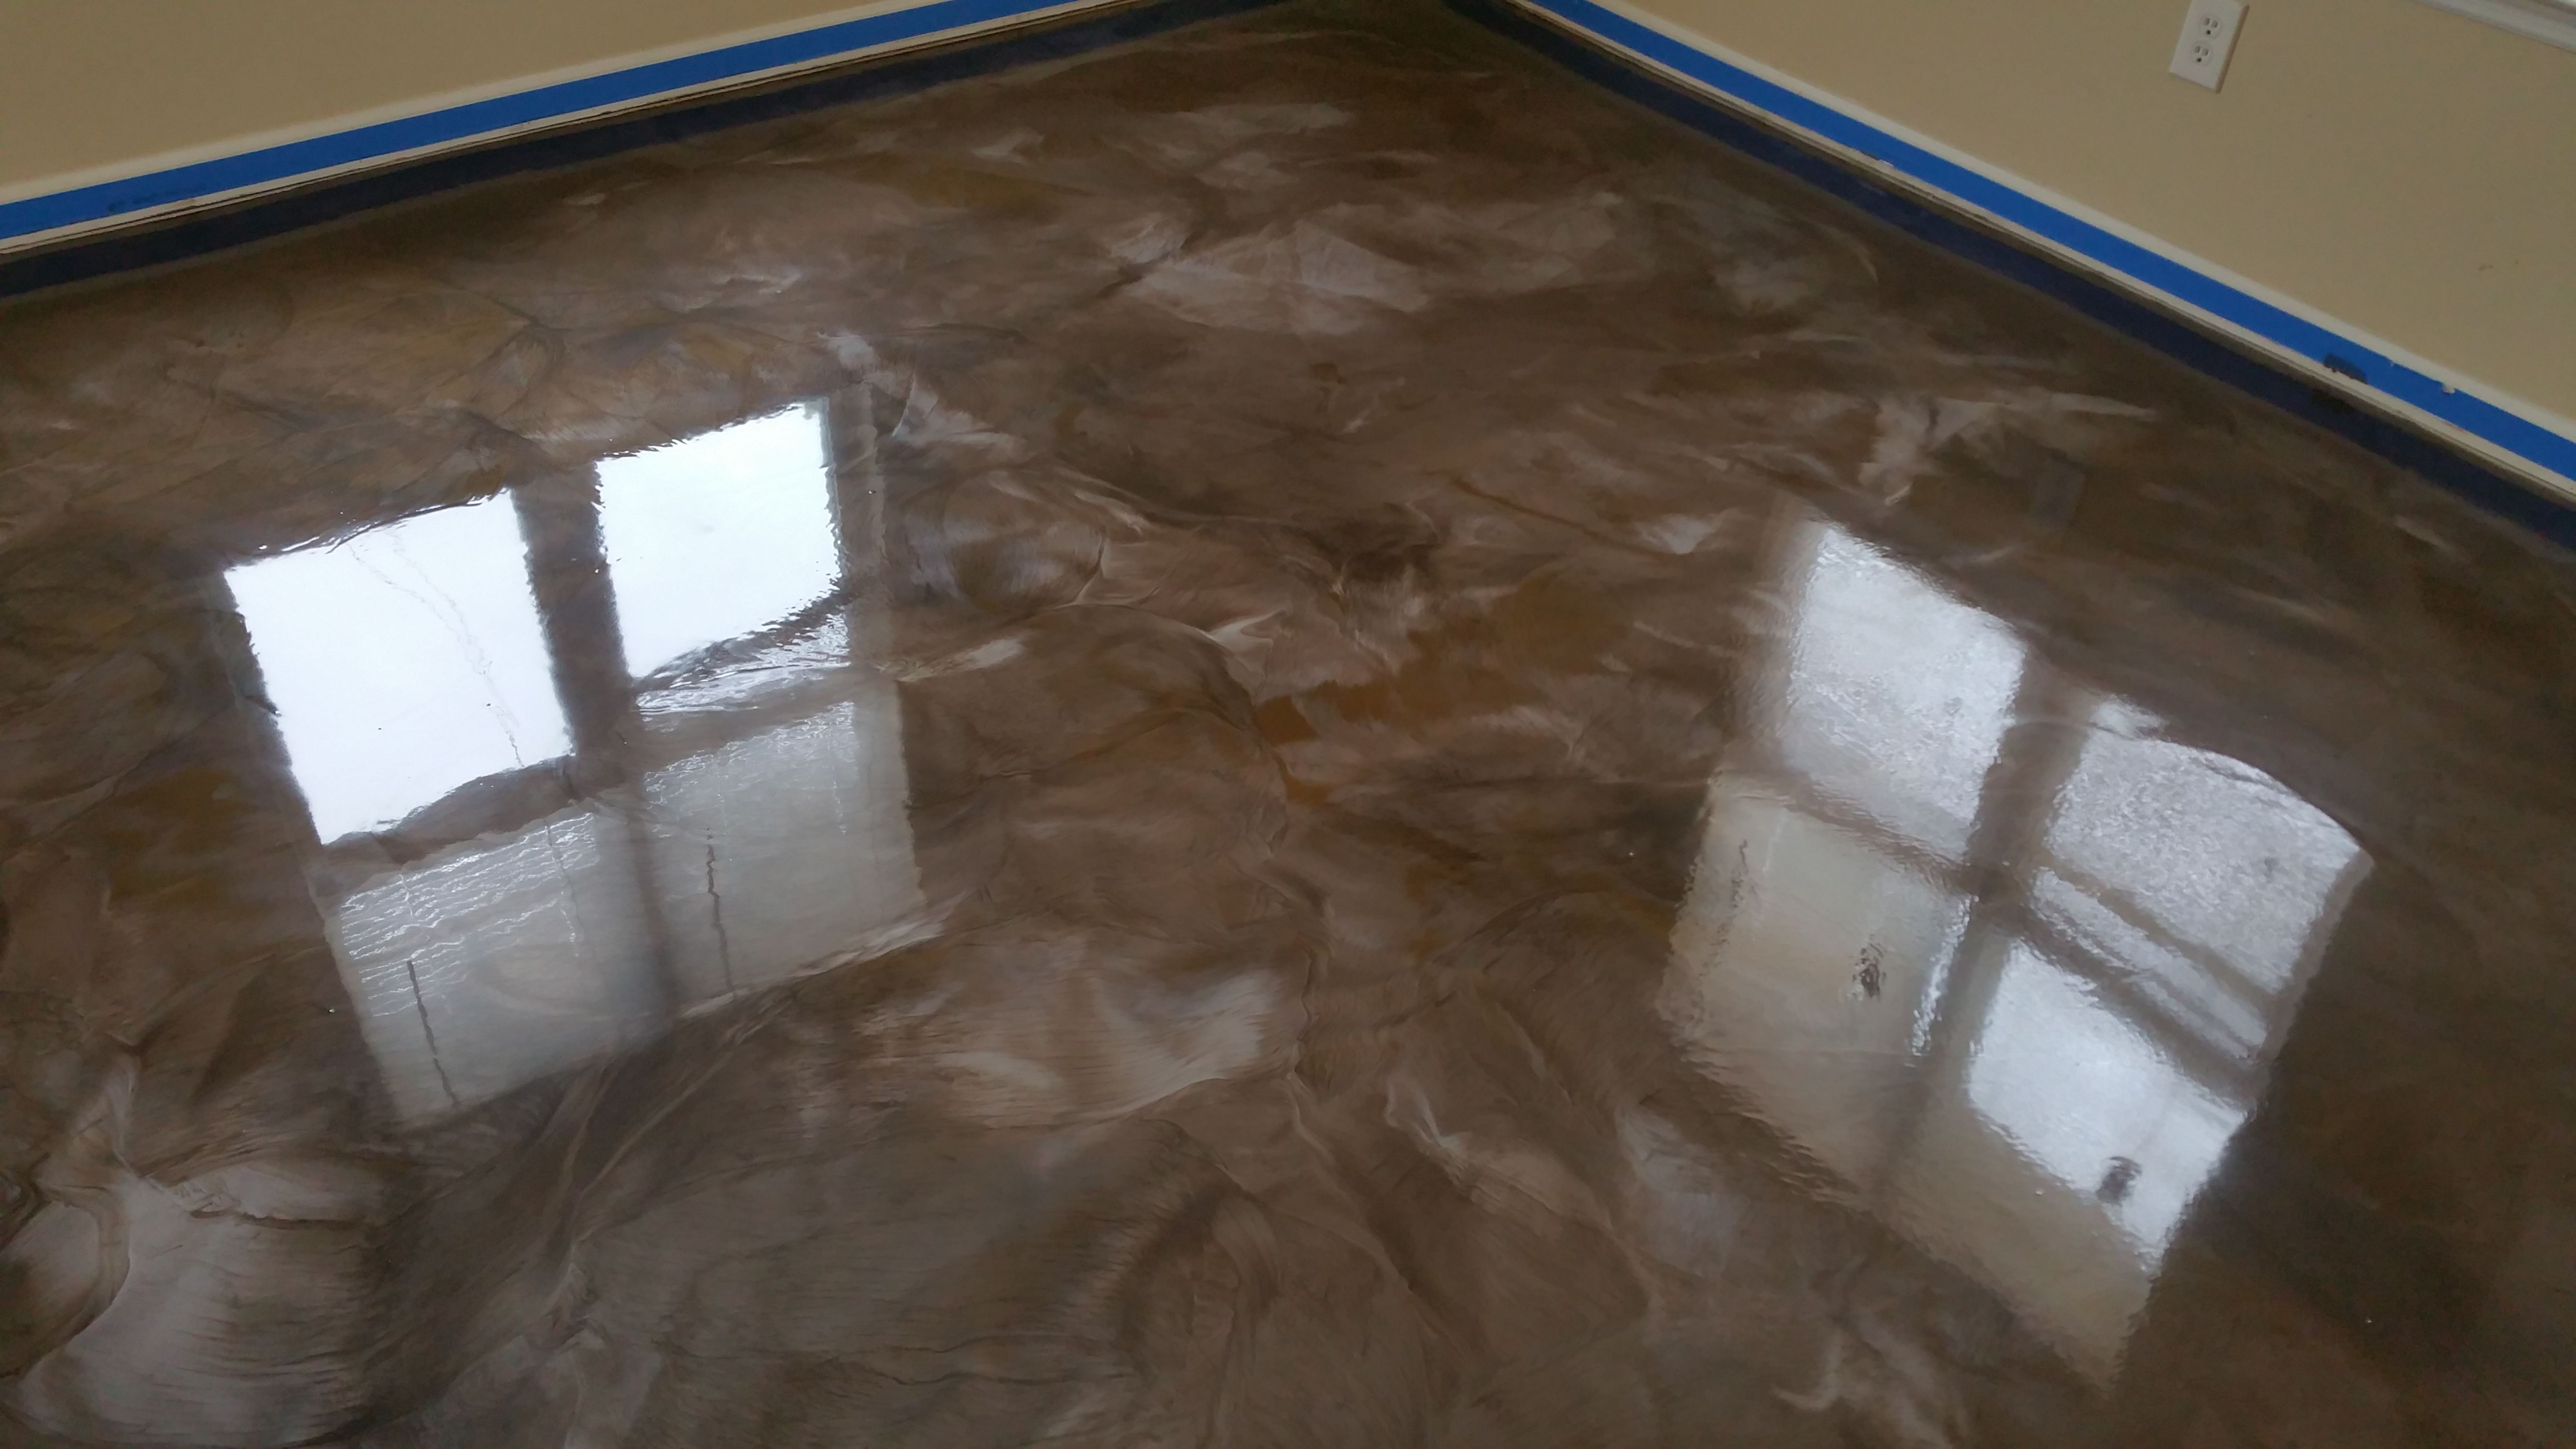 Liquid Marble Epoxy Flooring Is A Great Alternative To Stain And Painted Concrete It Is More Durable And Low Maintenance Compared T Epoxy Floor Flooring Epoxy